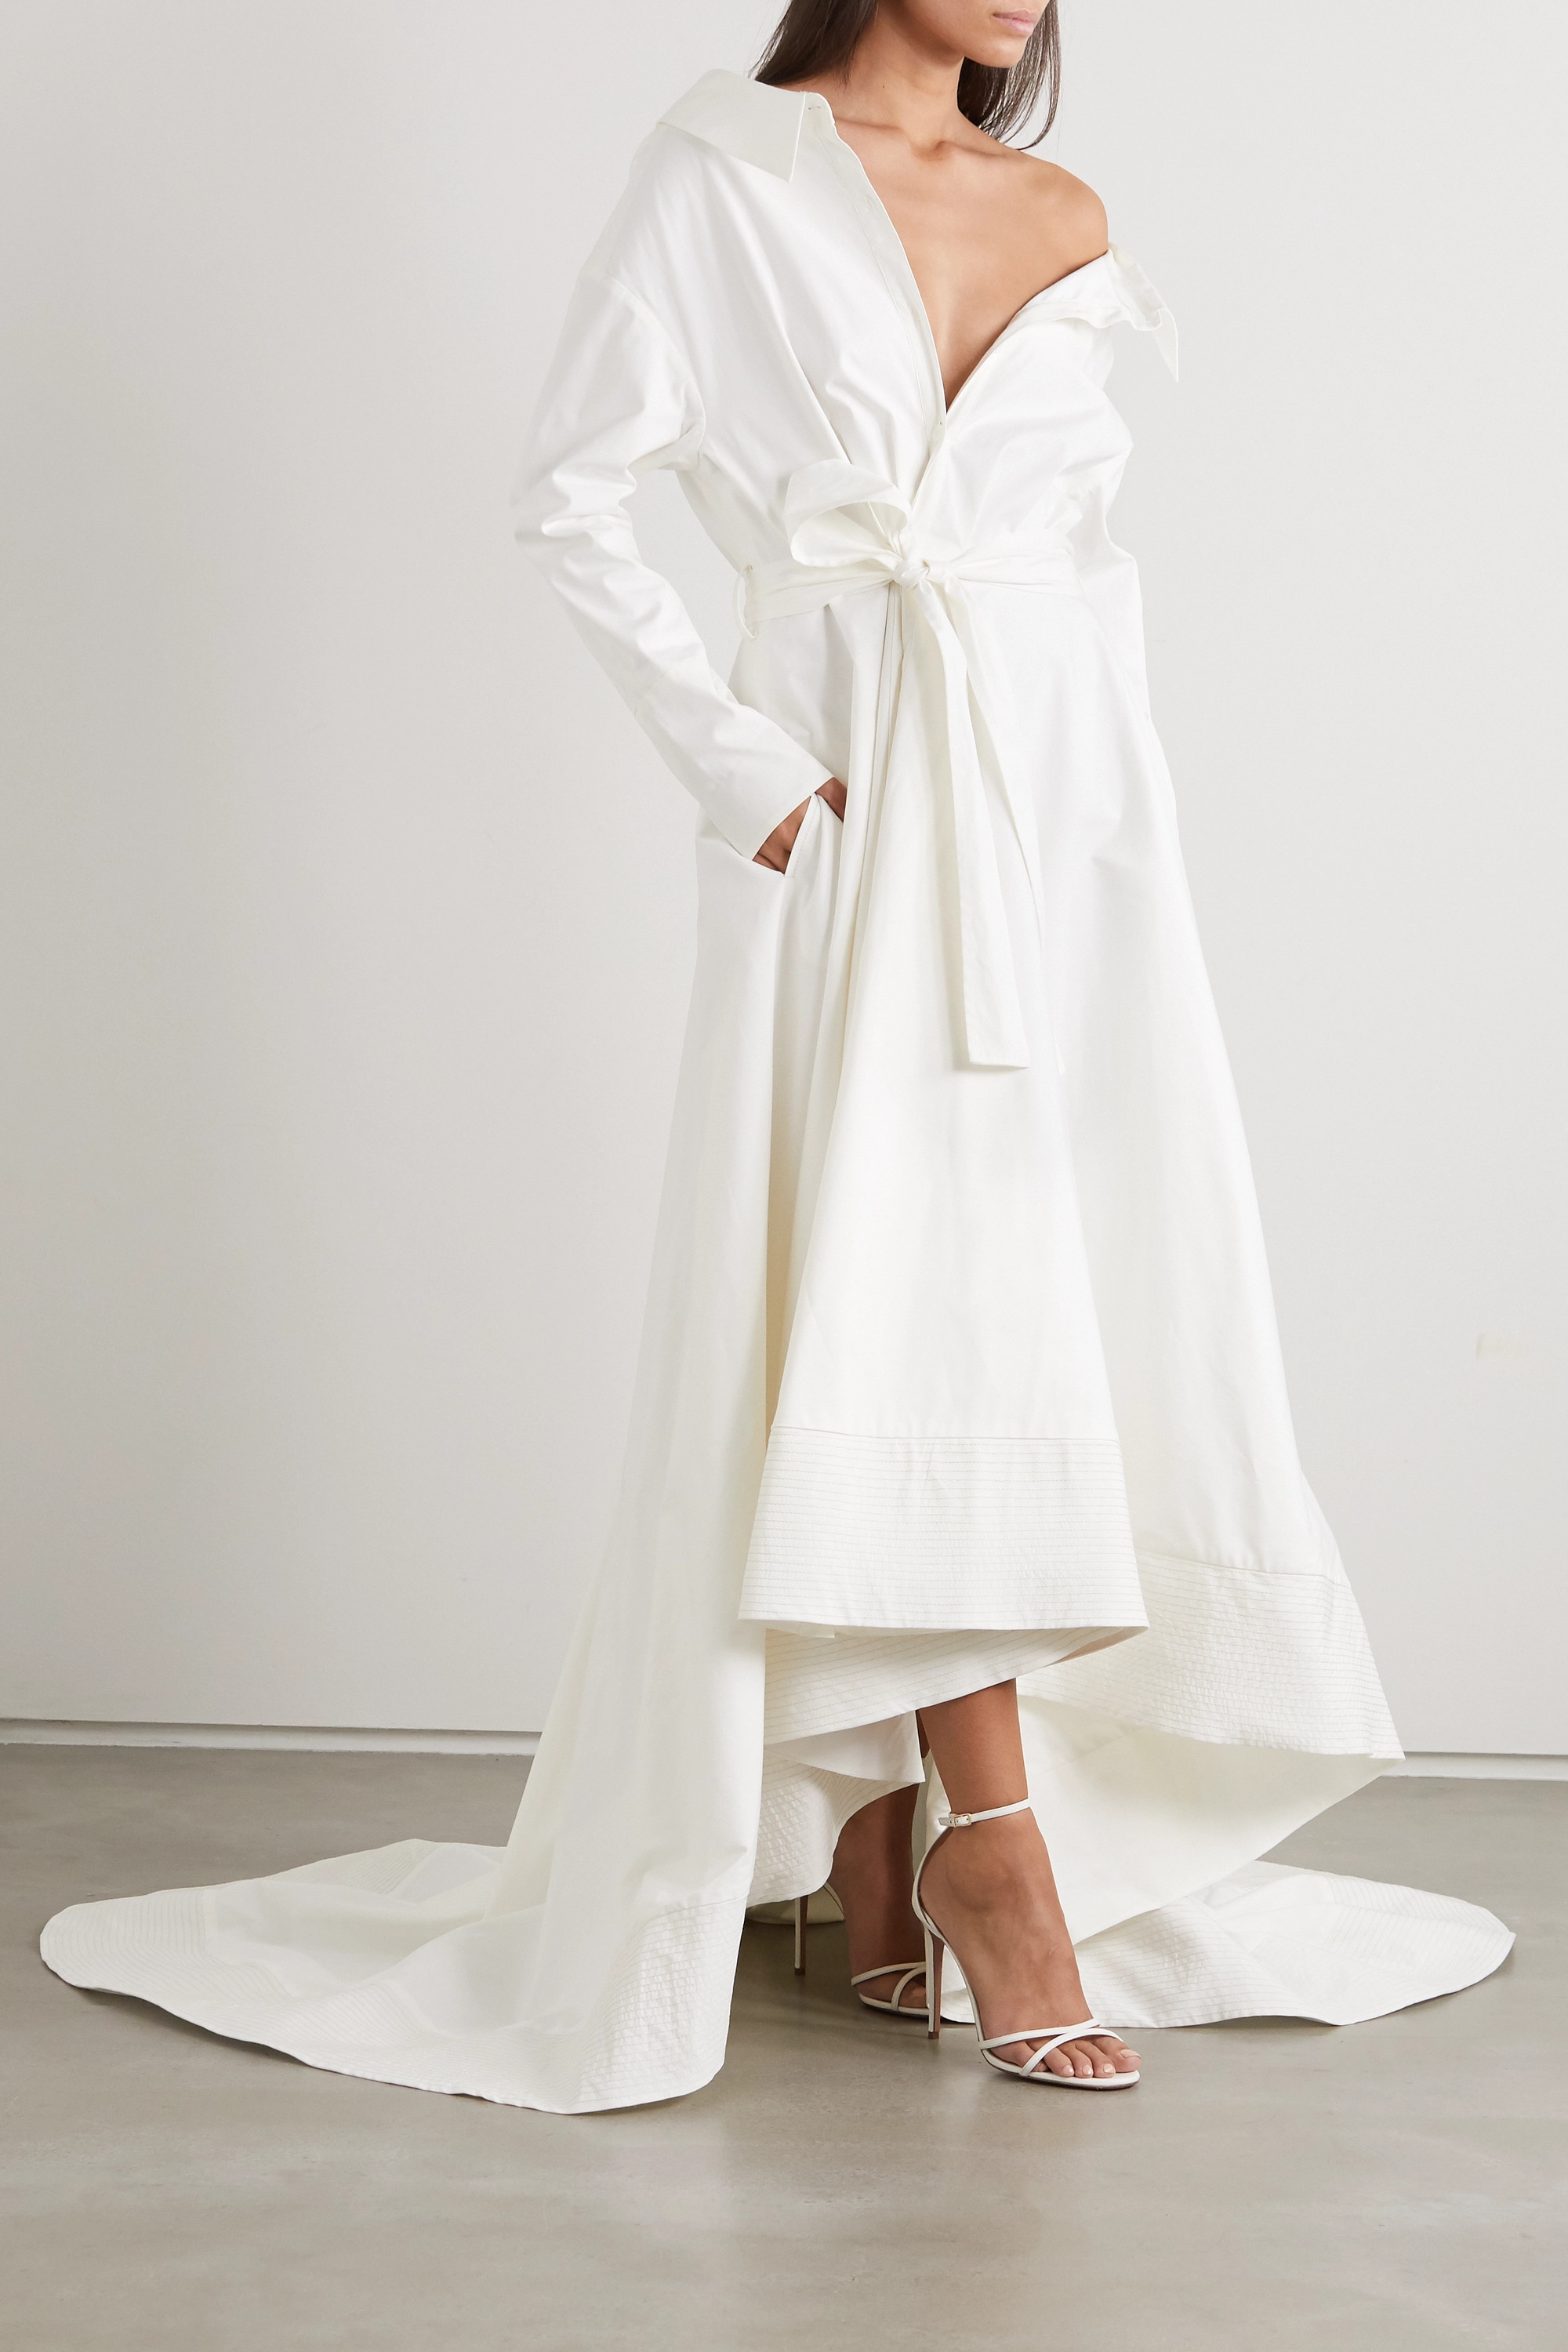 Danielle Frankel Lou off-the-shoulder cotton-blend poplin gown